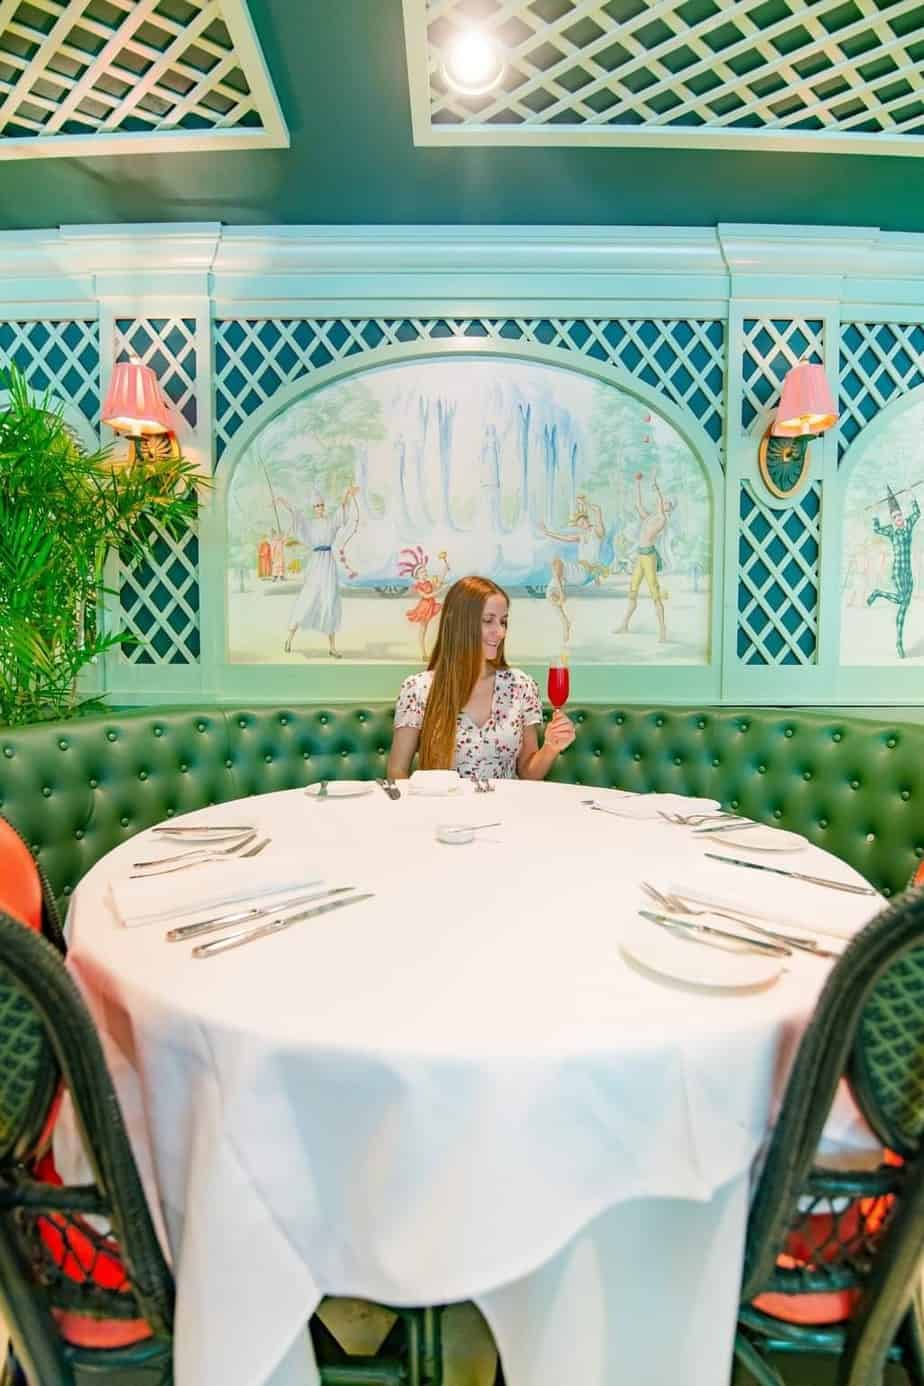 Finish off your New Orleans itinerary with dinner